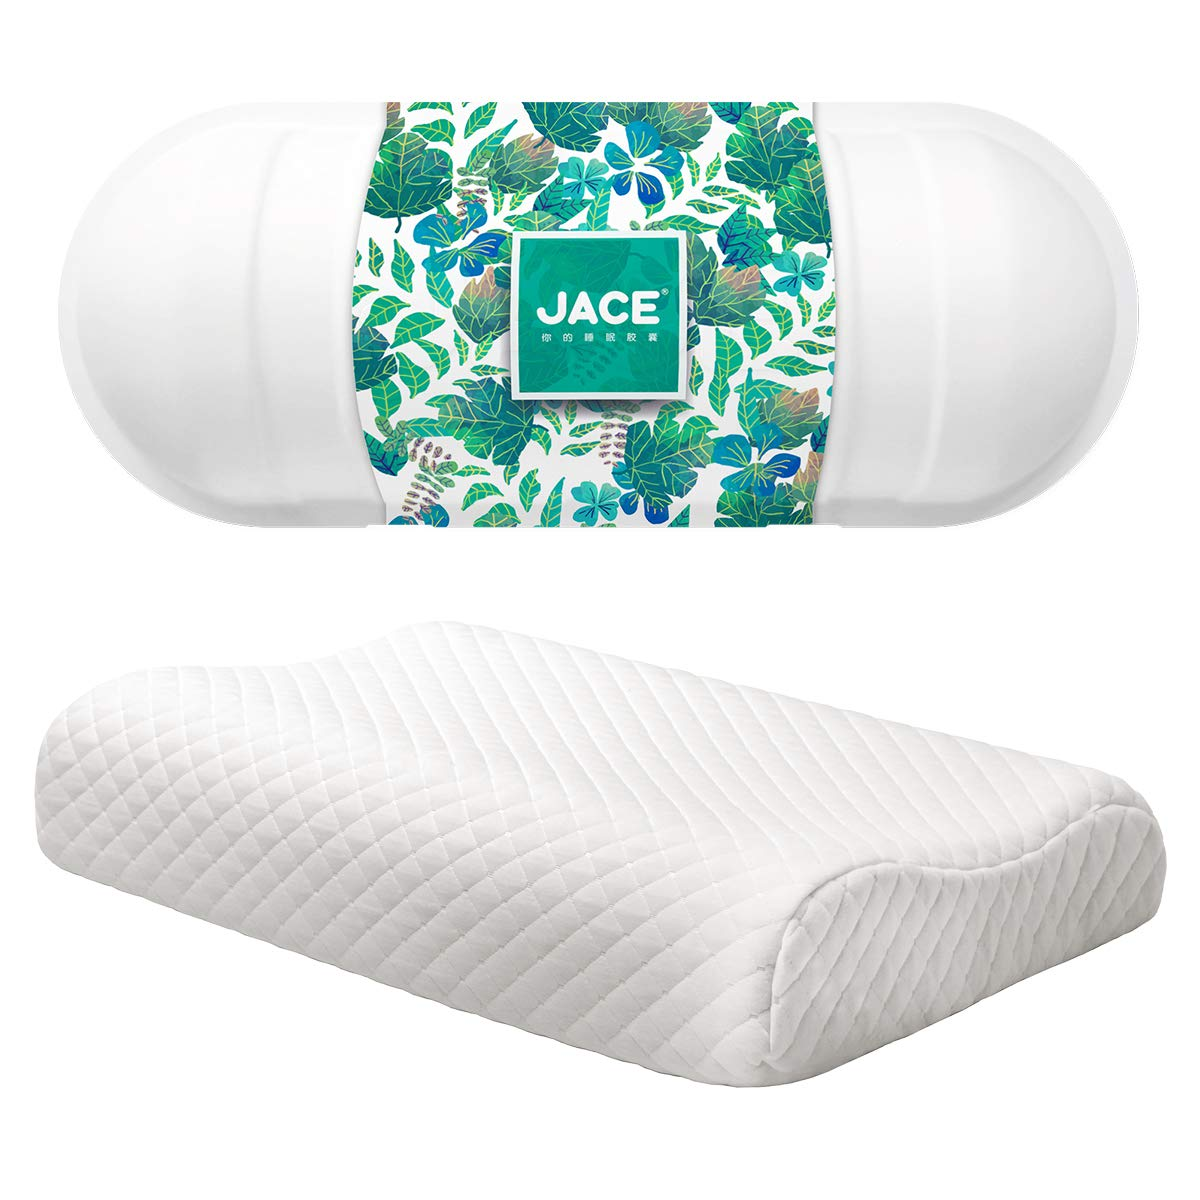 JACE Ultra-Luxury Contoured Pillow Natural Pure Latex Soft Density with AirCell Technology, Zipper Removable Cotton Case,Cooling Stomach Sleeping Pillow